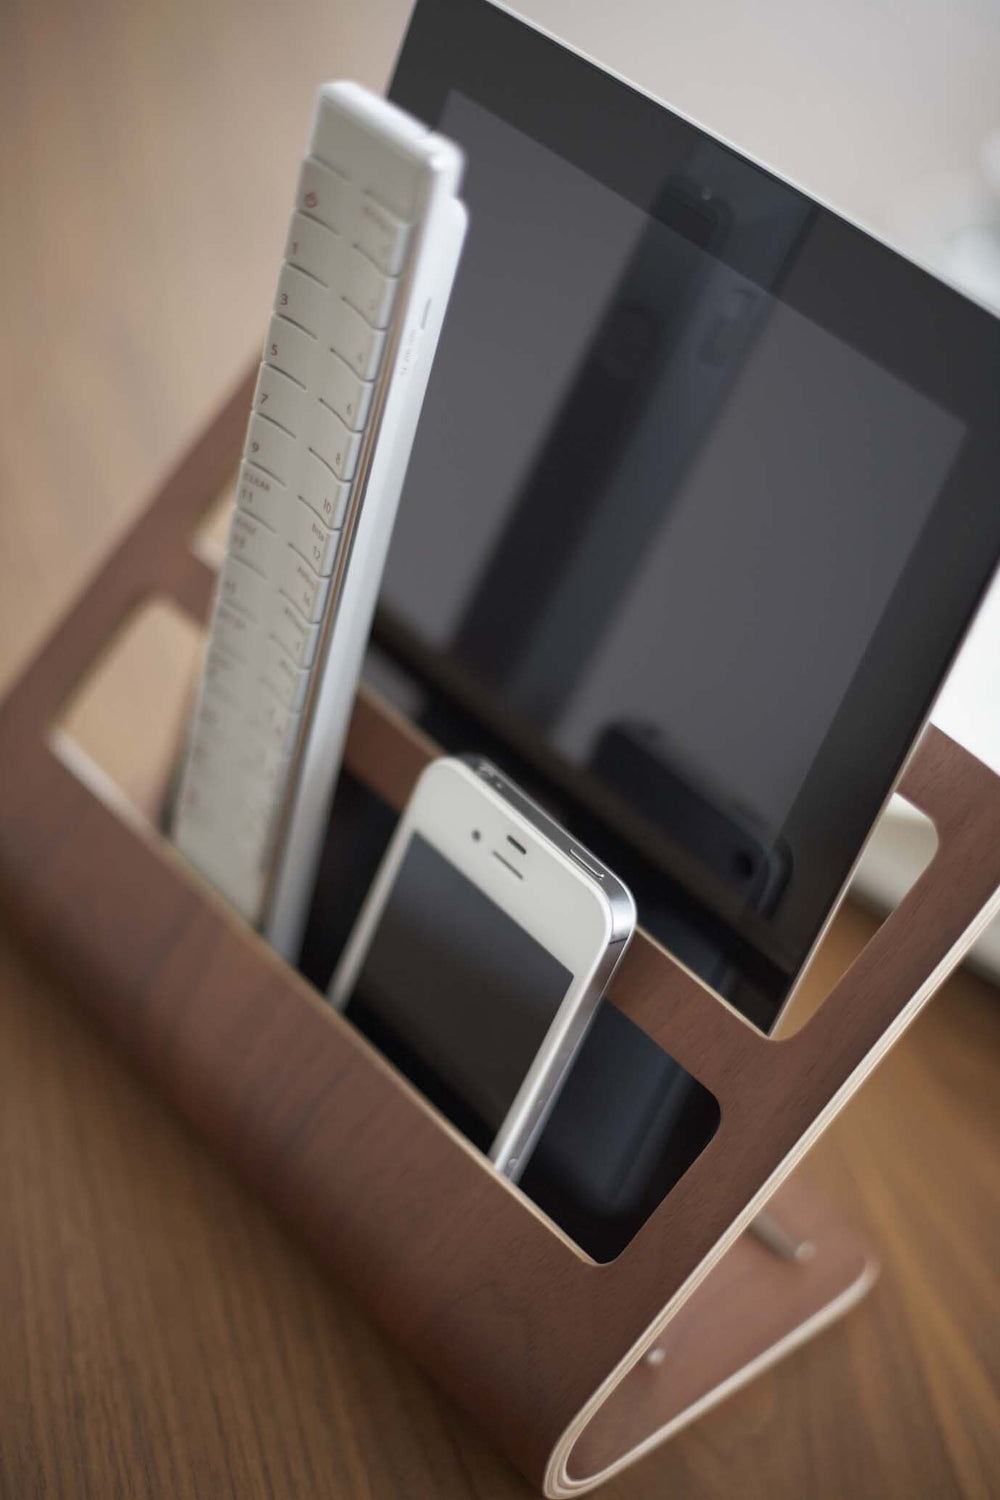 Yamazaki's dark plywood stand holding a mobile tablet and remotes on a coffee table.